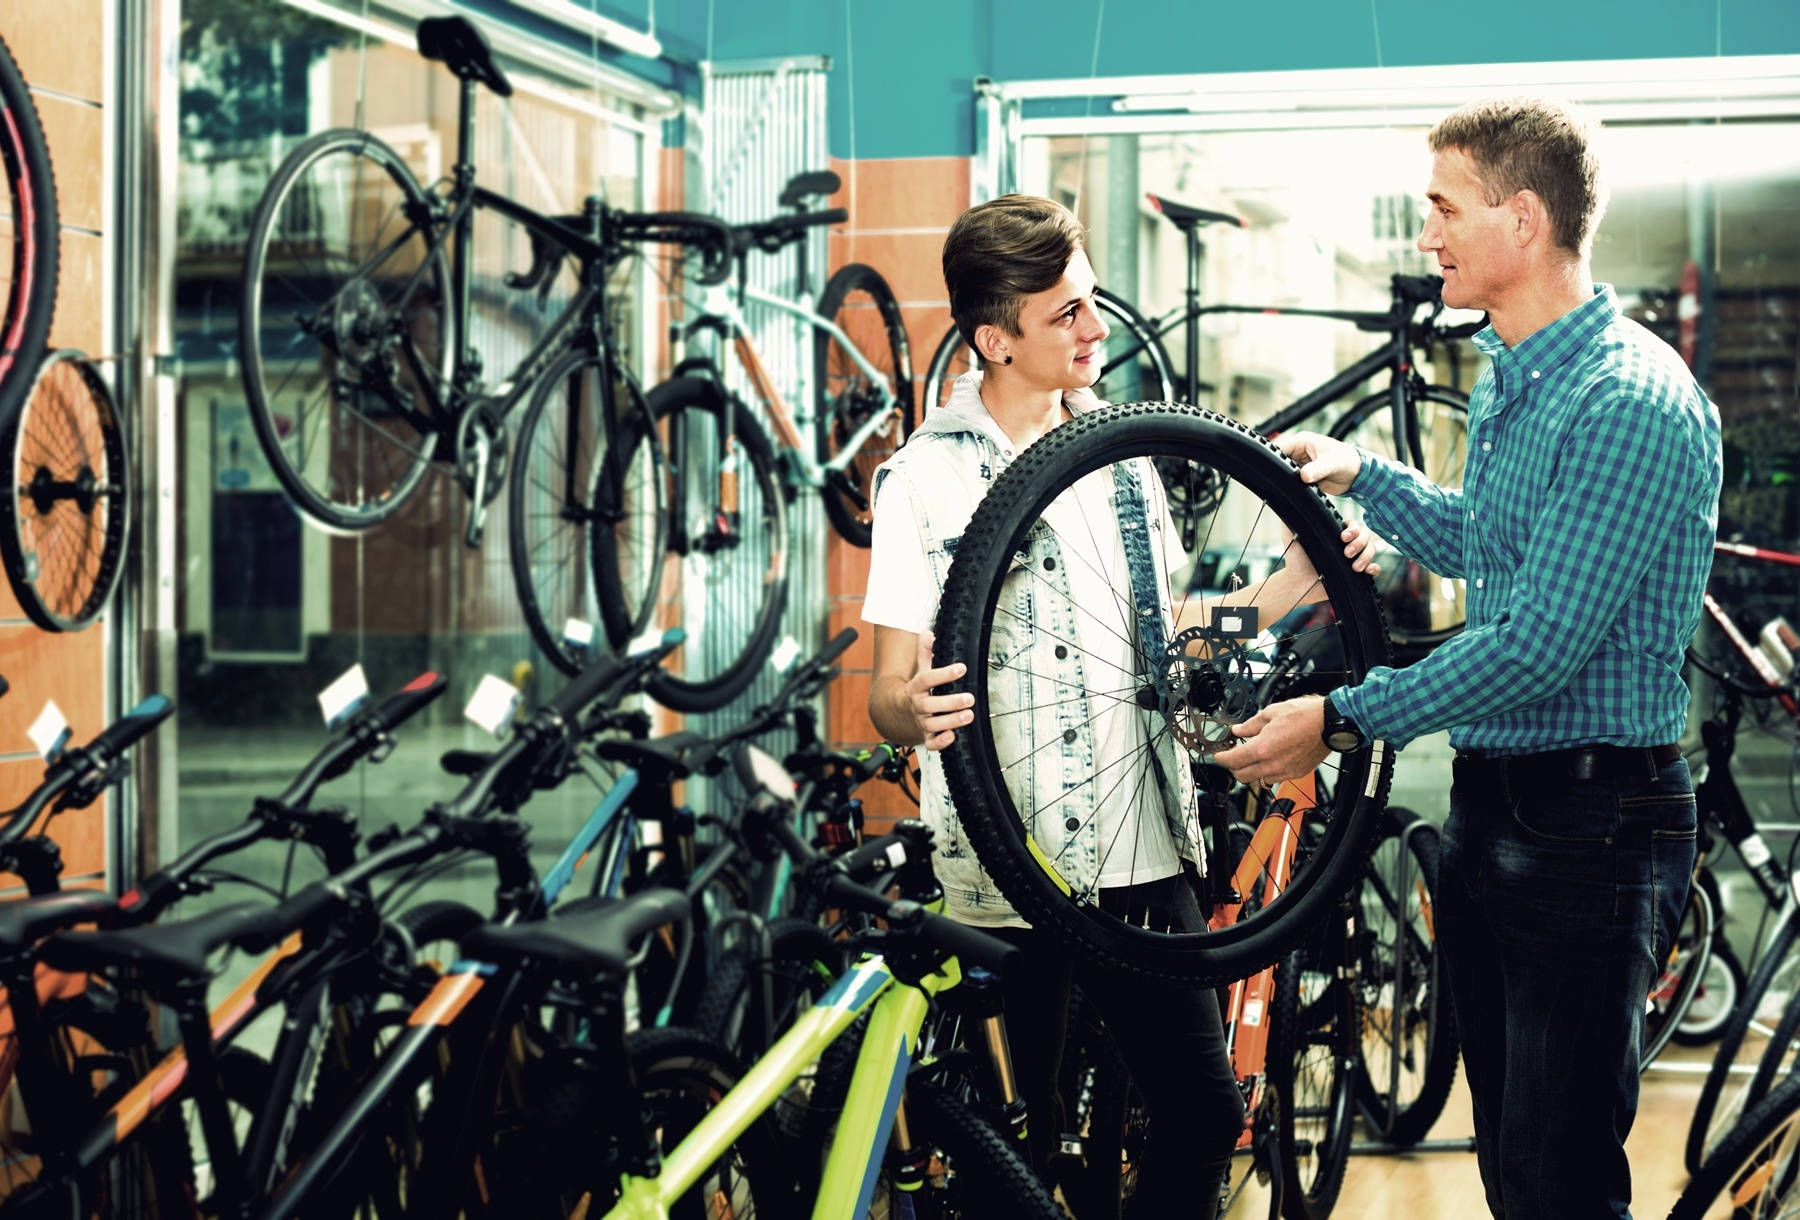 With 2,200 retailers, Bike2Work Scheme's network is the largest of the scheme providers.